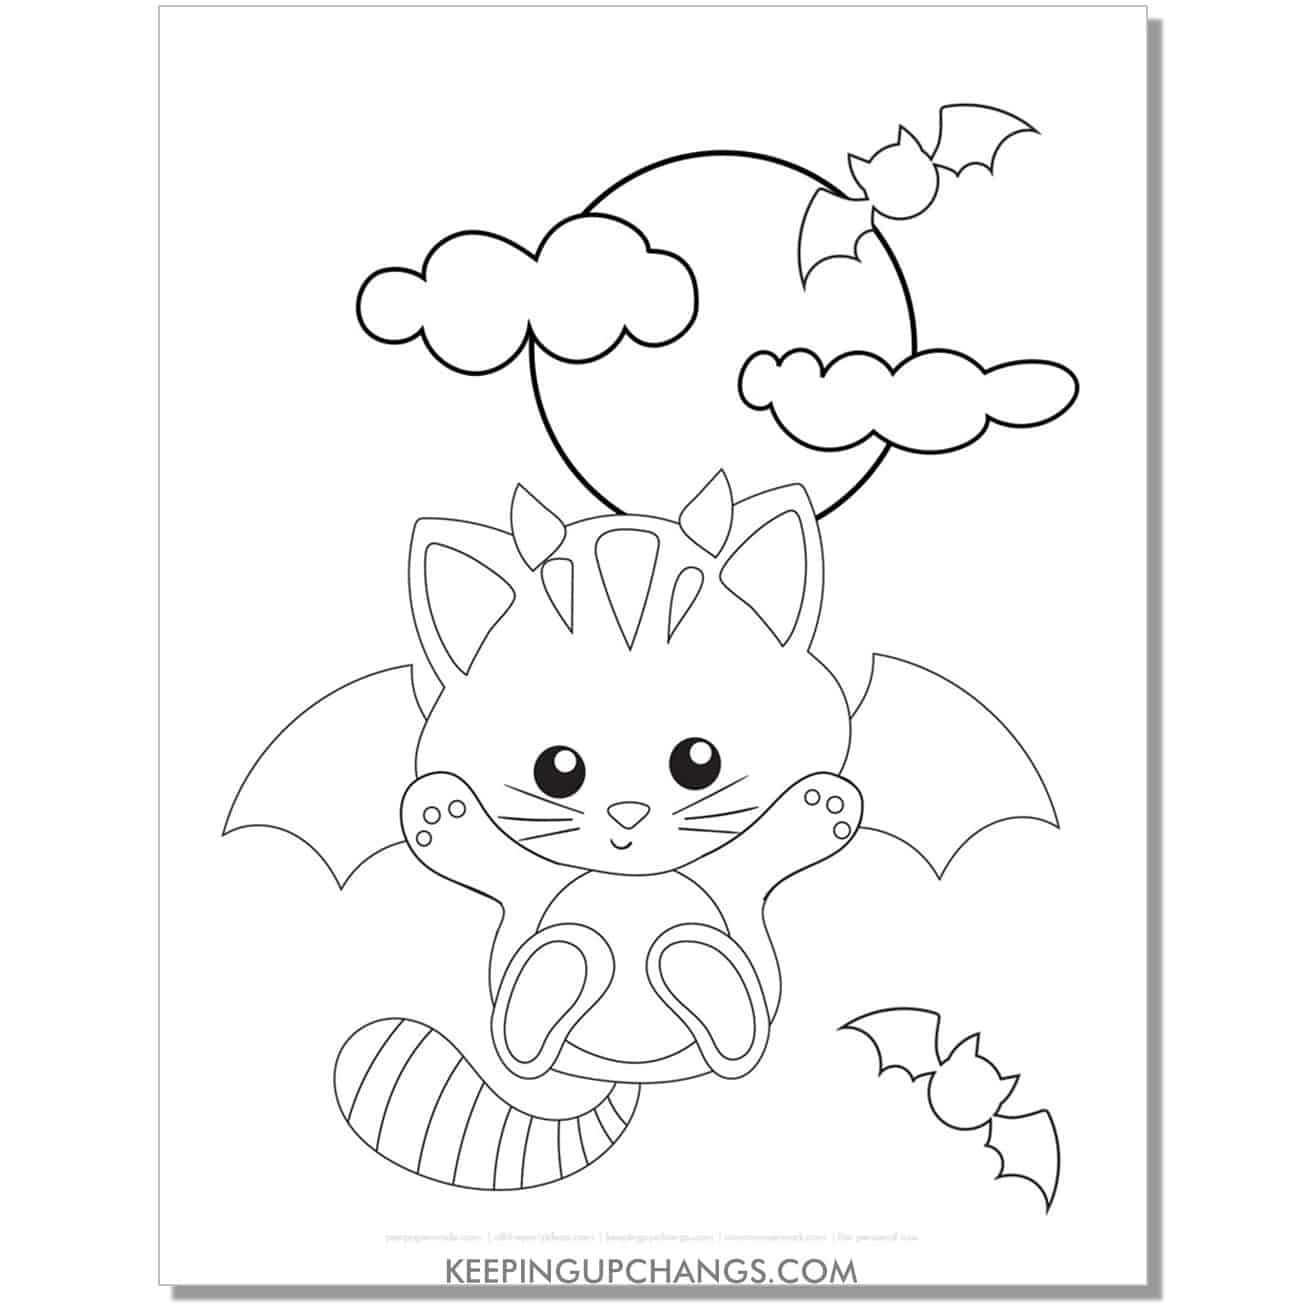 kawaii halloween cat with bat wings and moon coloring page.